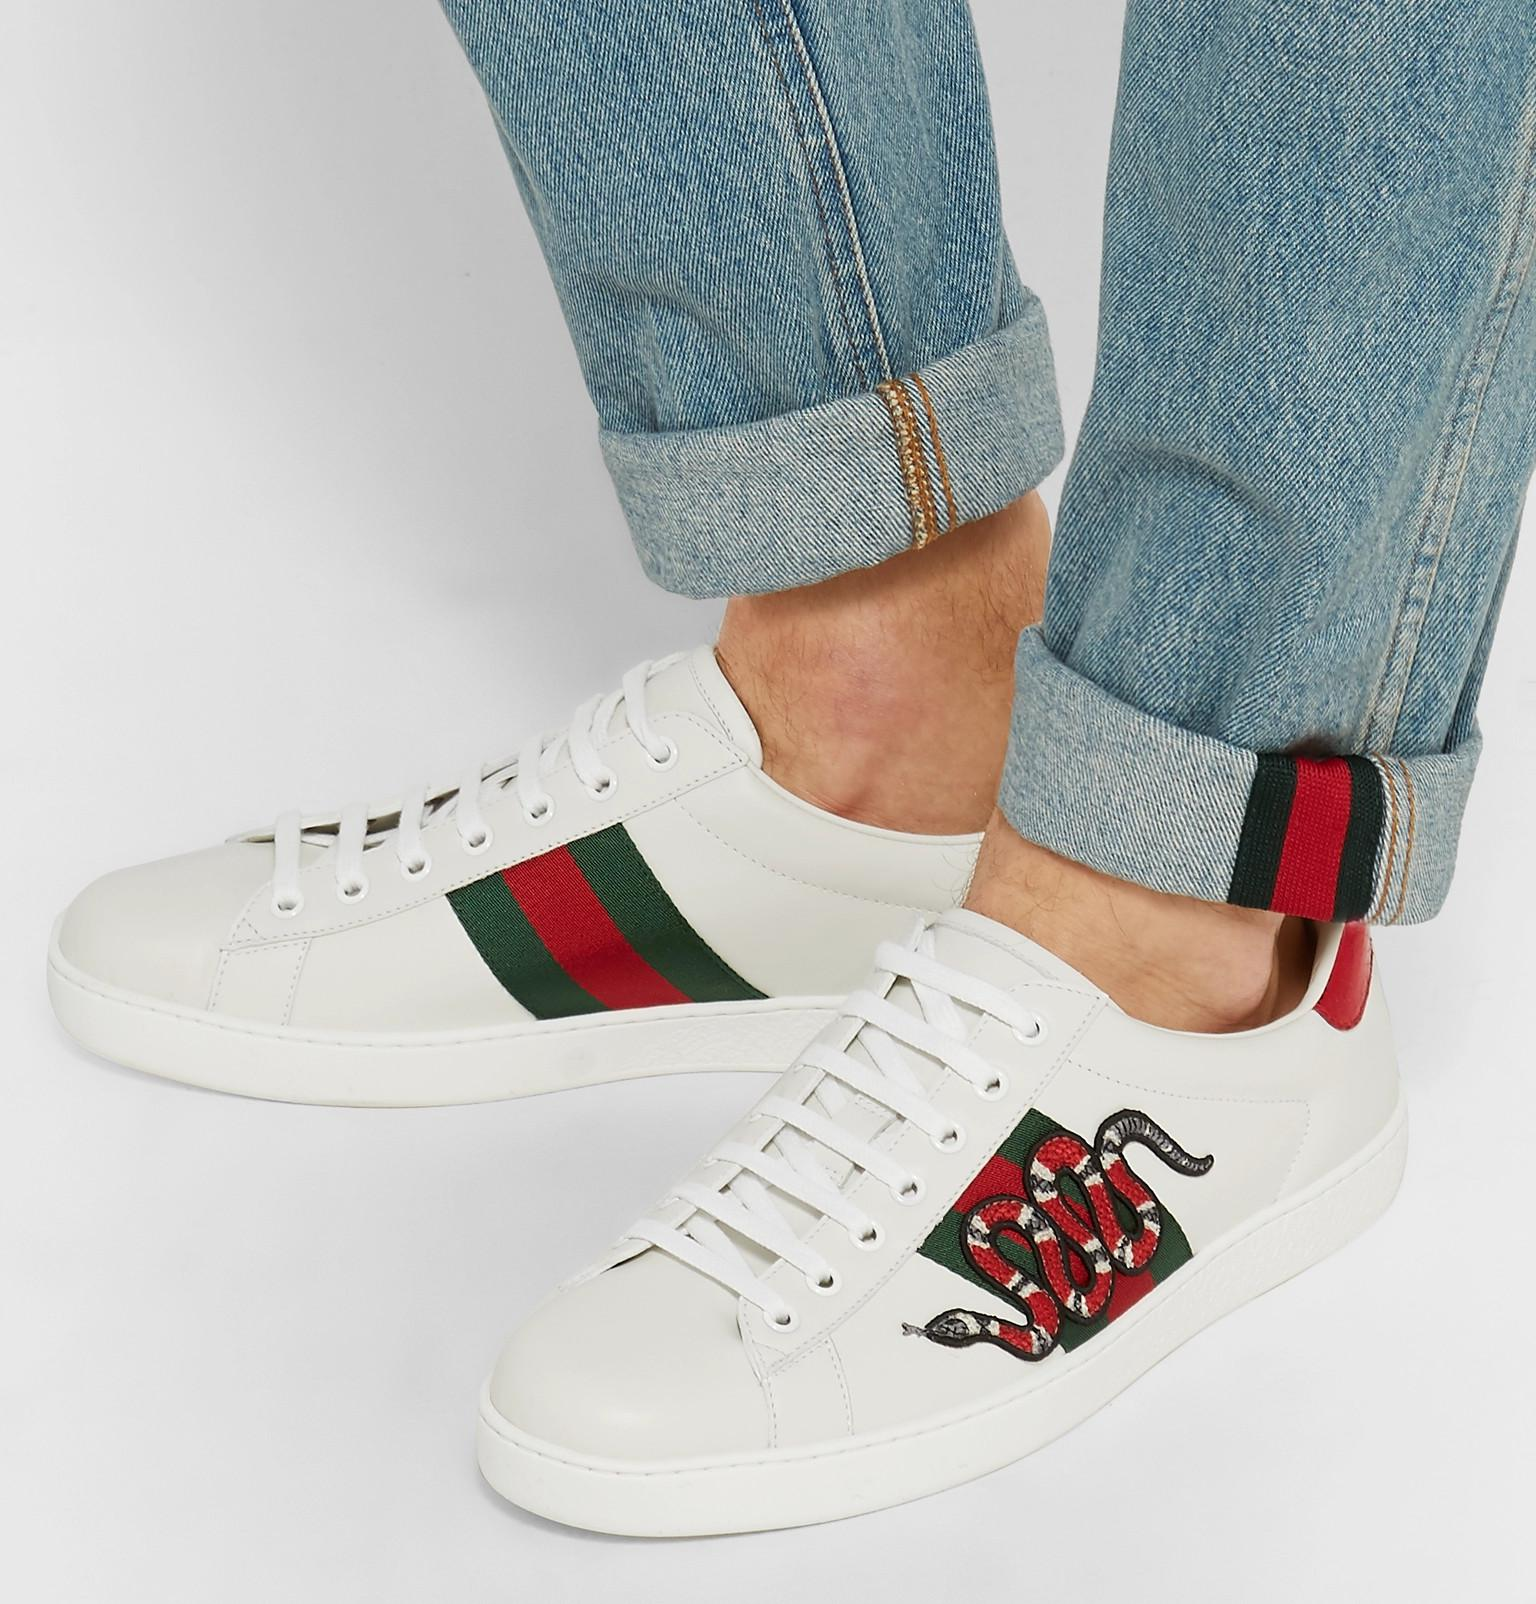 bb1283dbb3a Gucci - White Ace Snake-appliquéd Leather Trainers for Men - Lyst. View  fullscreen